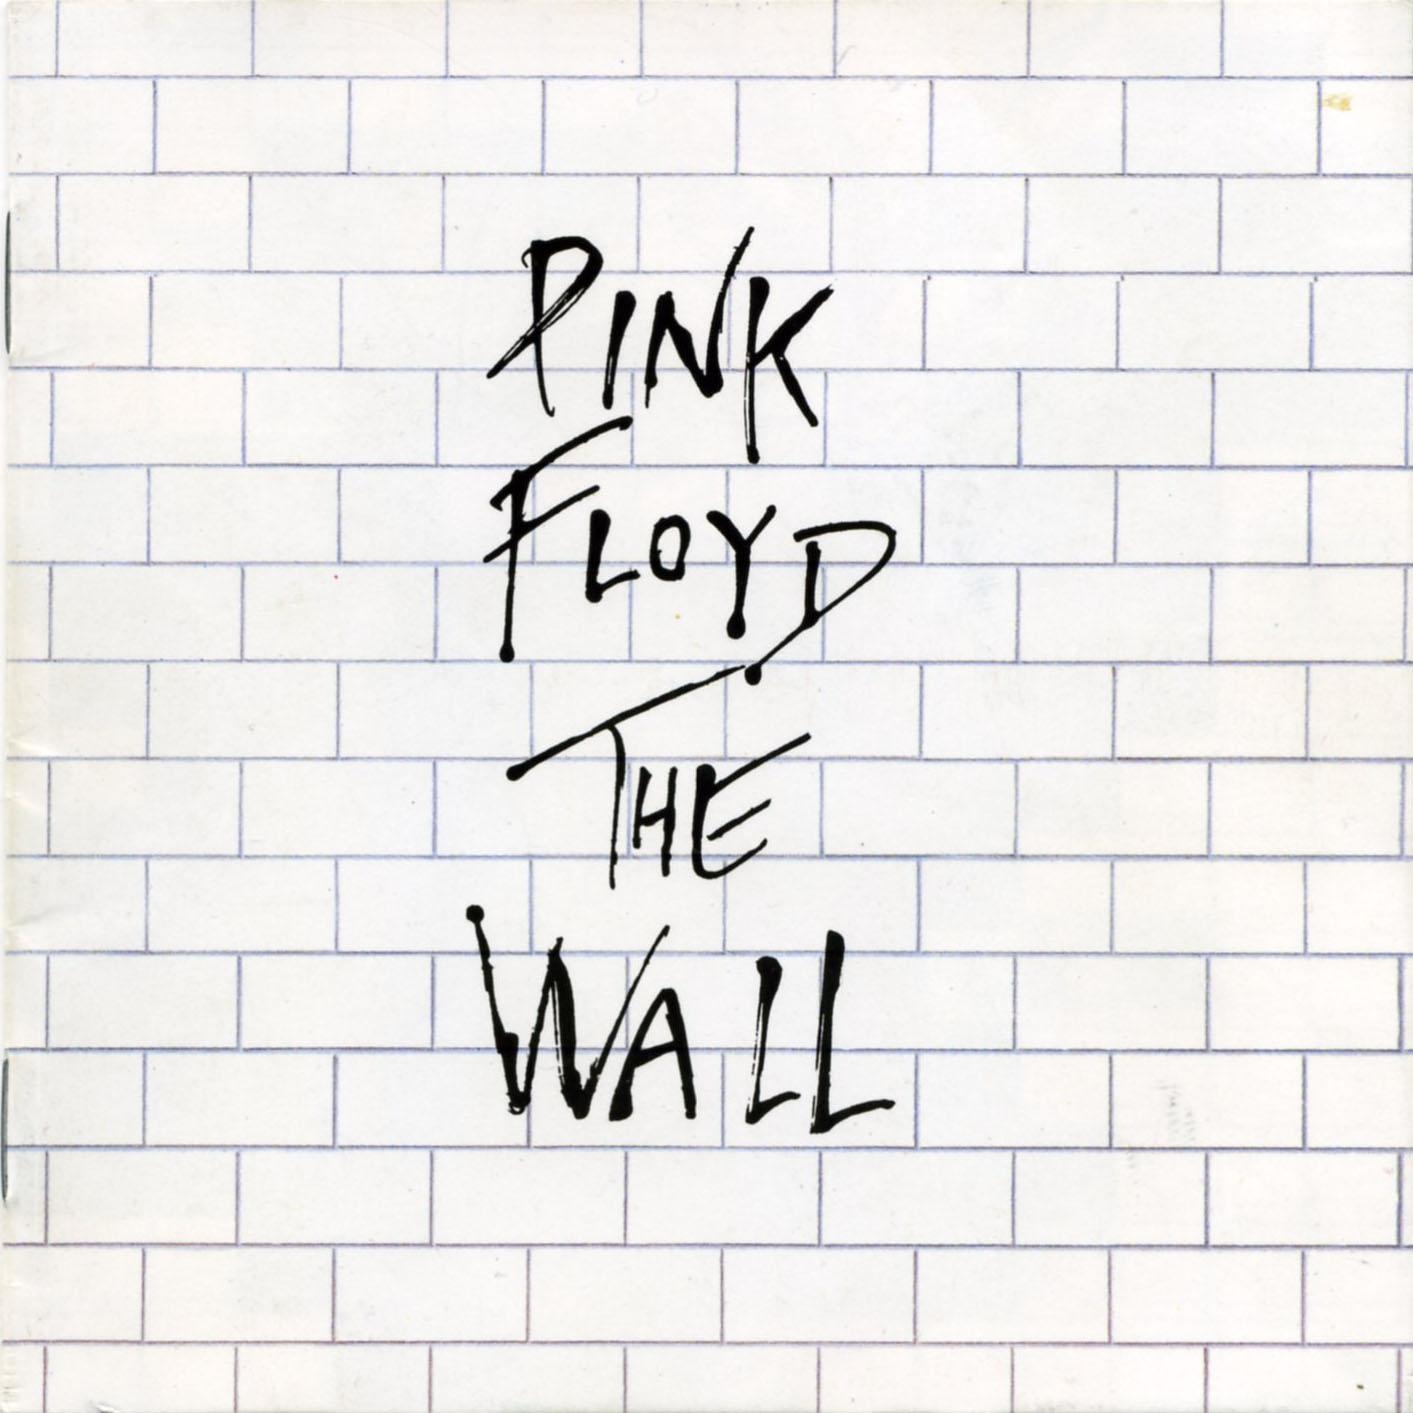 Pink Floyd The Wall Album Cover – Wallpaper (Image 14 of 20)